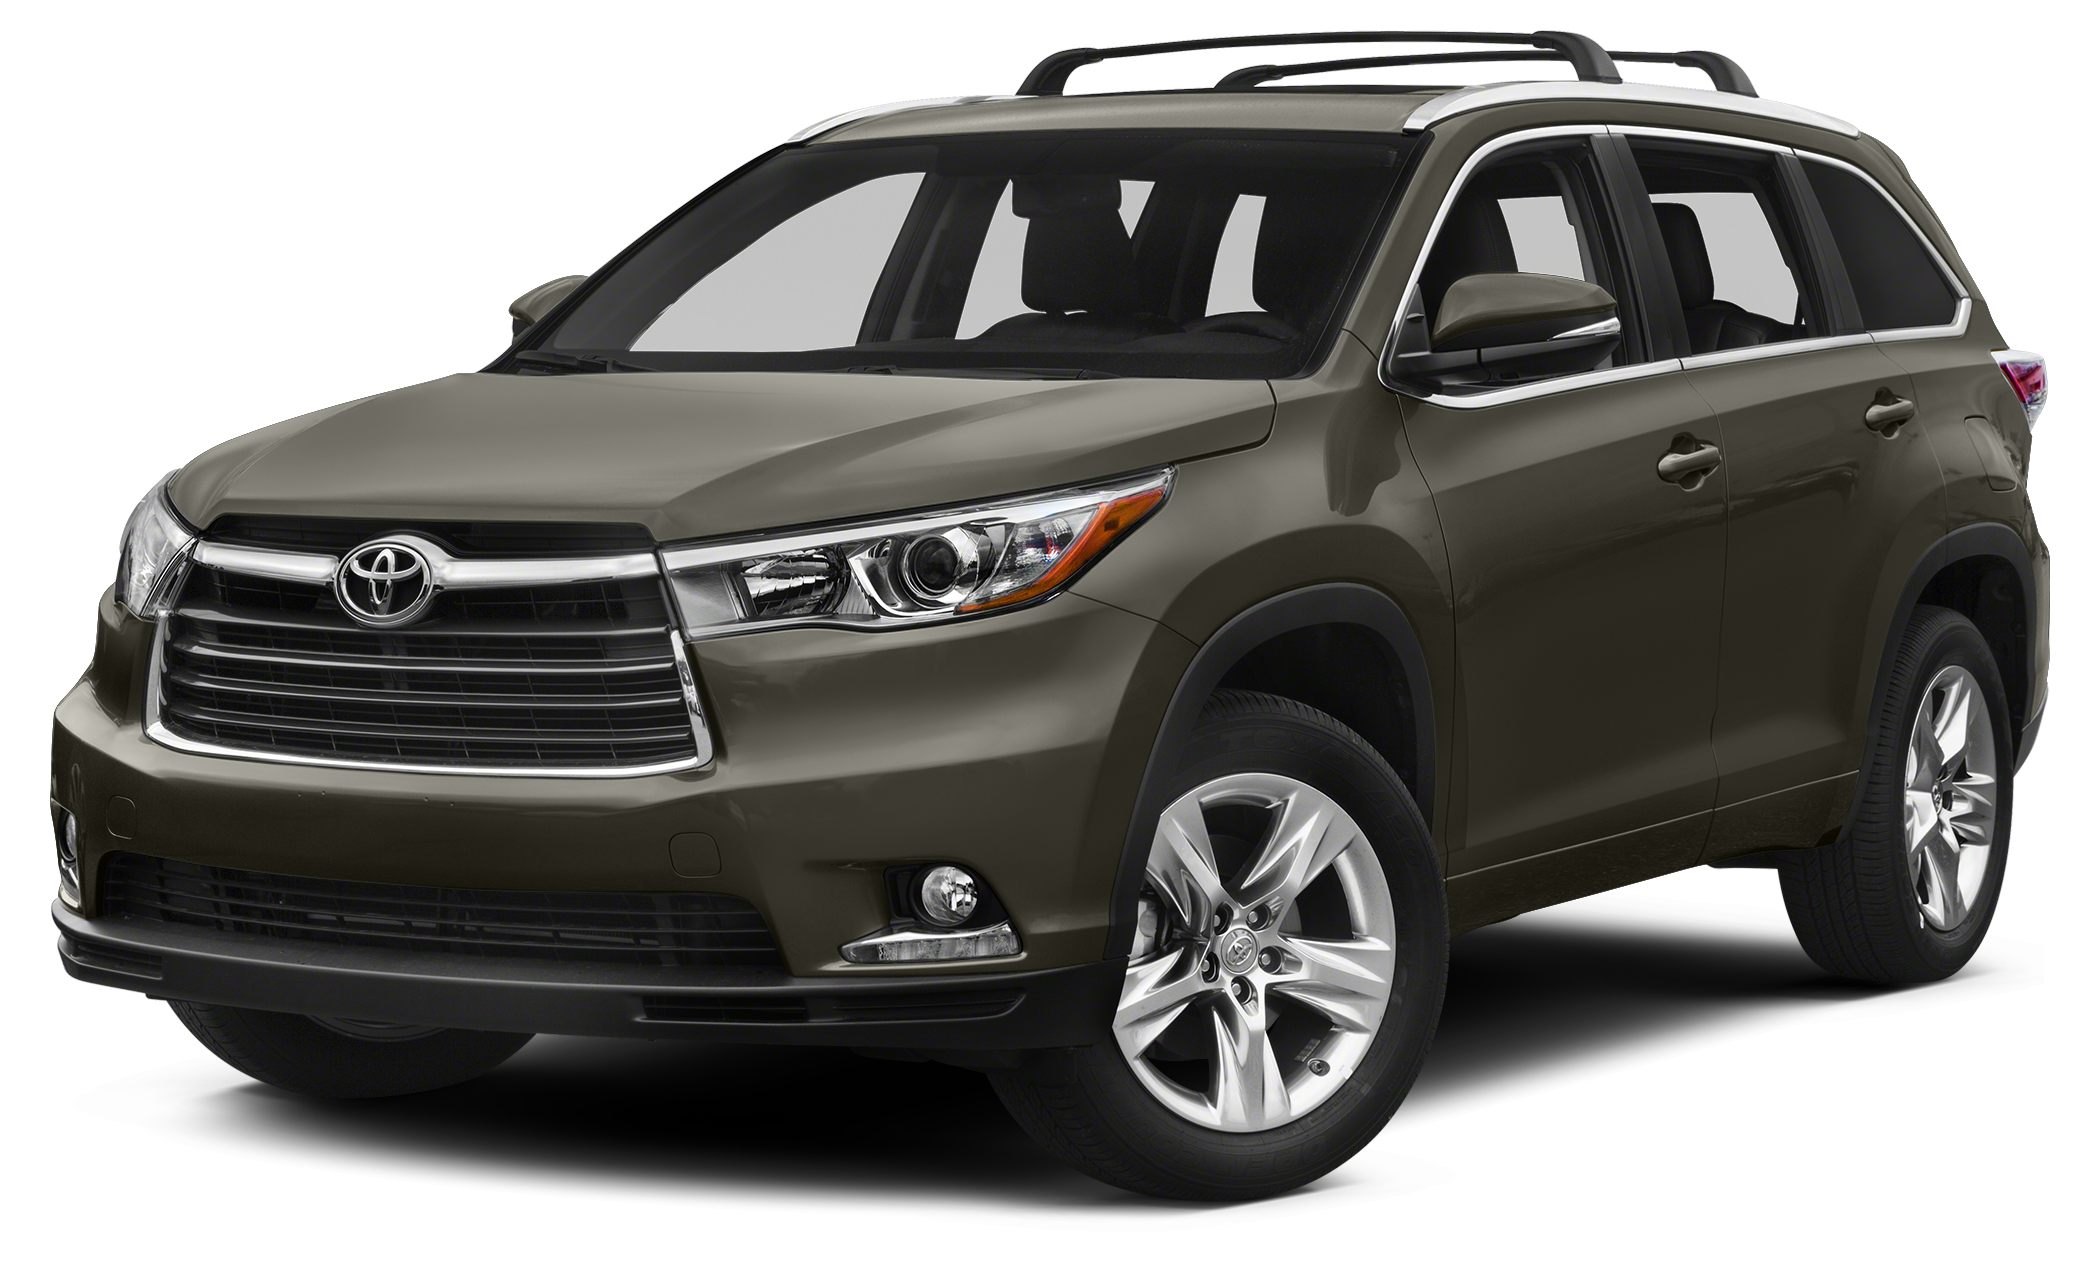 2014 Toyota Highlander XLE Land a bargain on this 2014 Toyota Highlander XLE before its too late